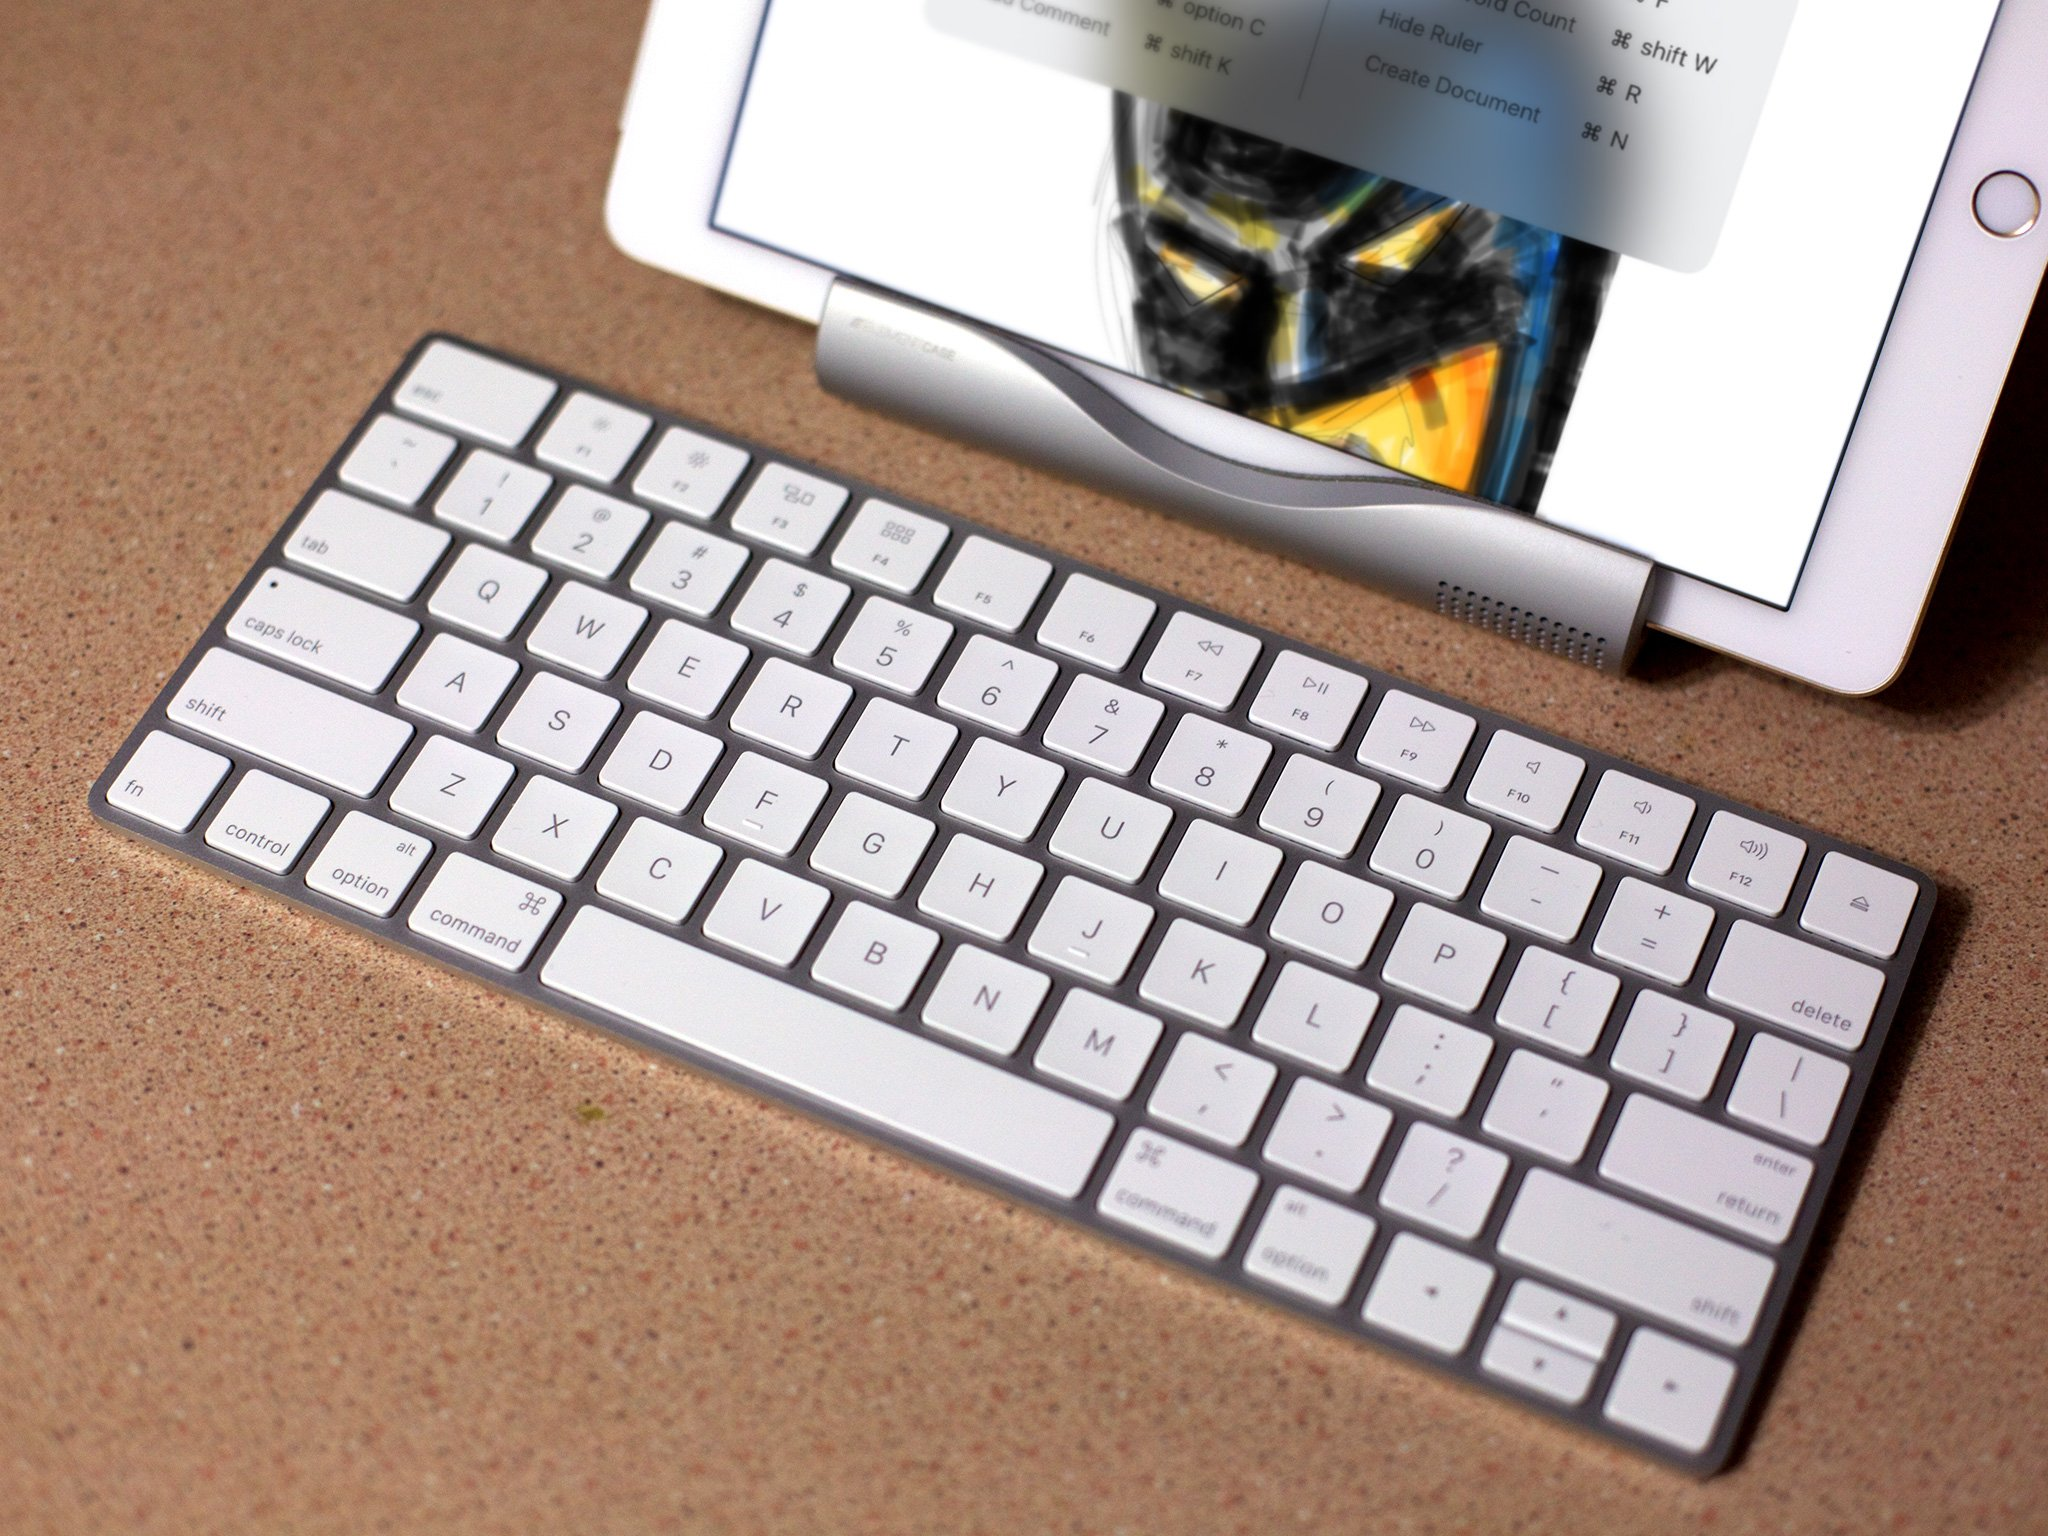 hight resolution of how to connect a bluetooth keyboard to ipad